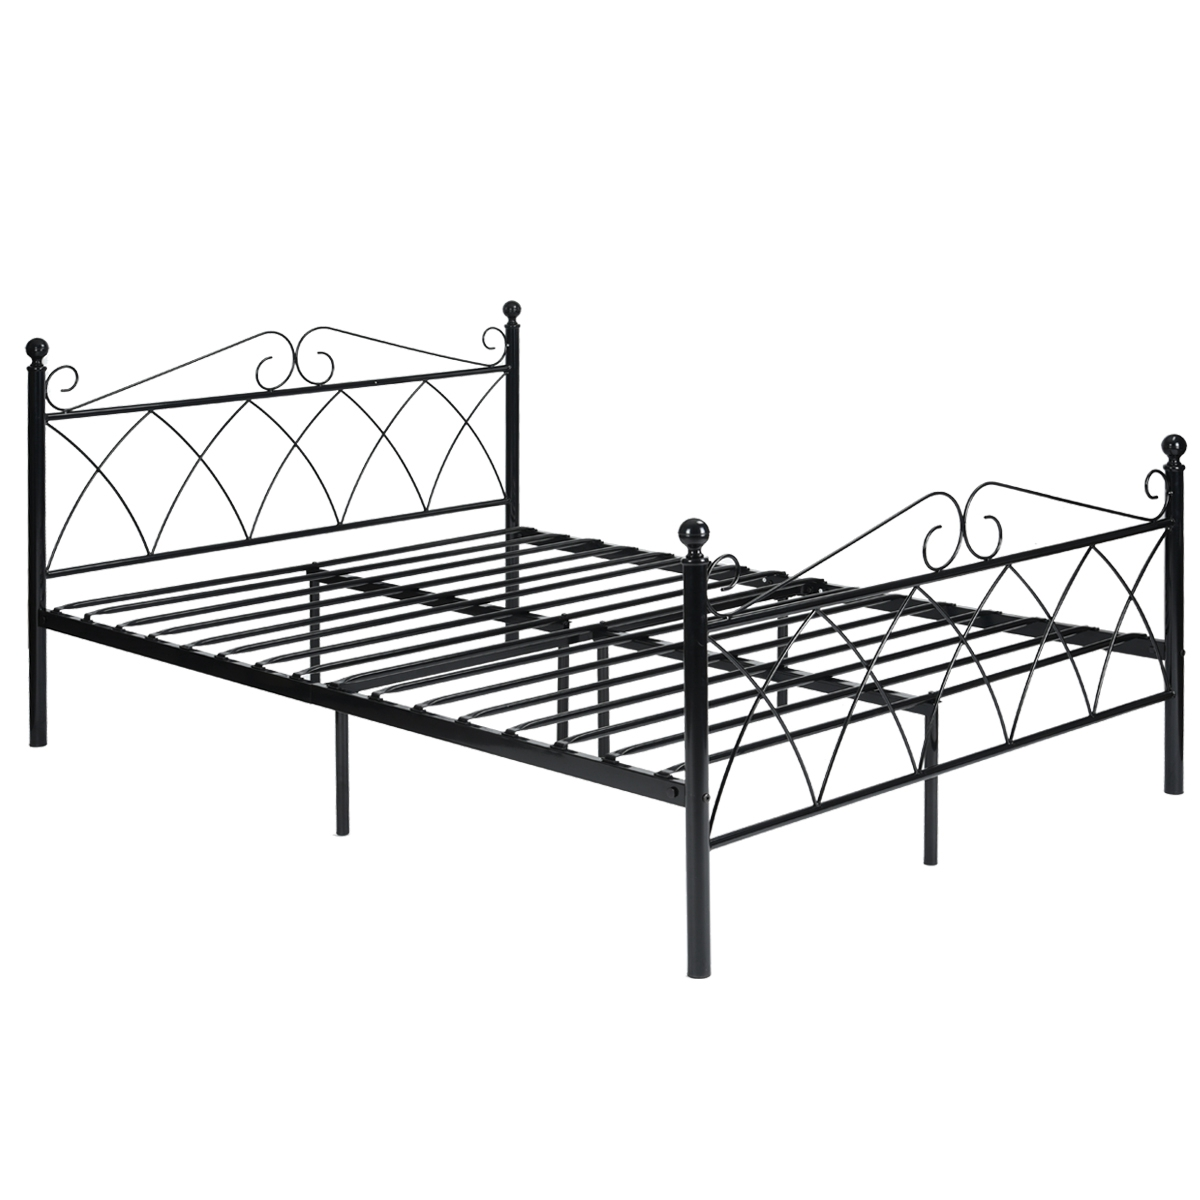 How To Assemble Headboard To Metal Bed Frame